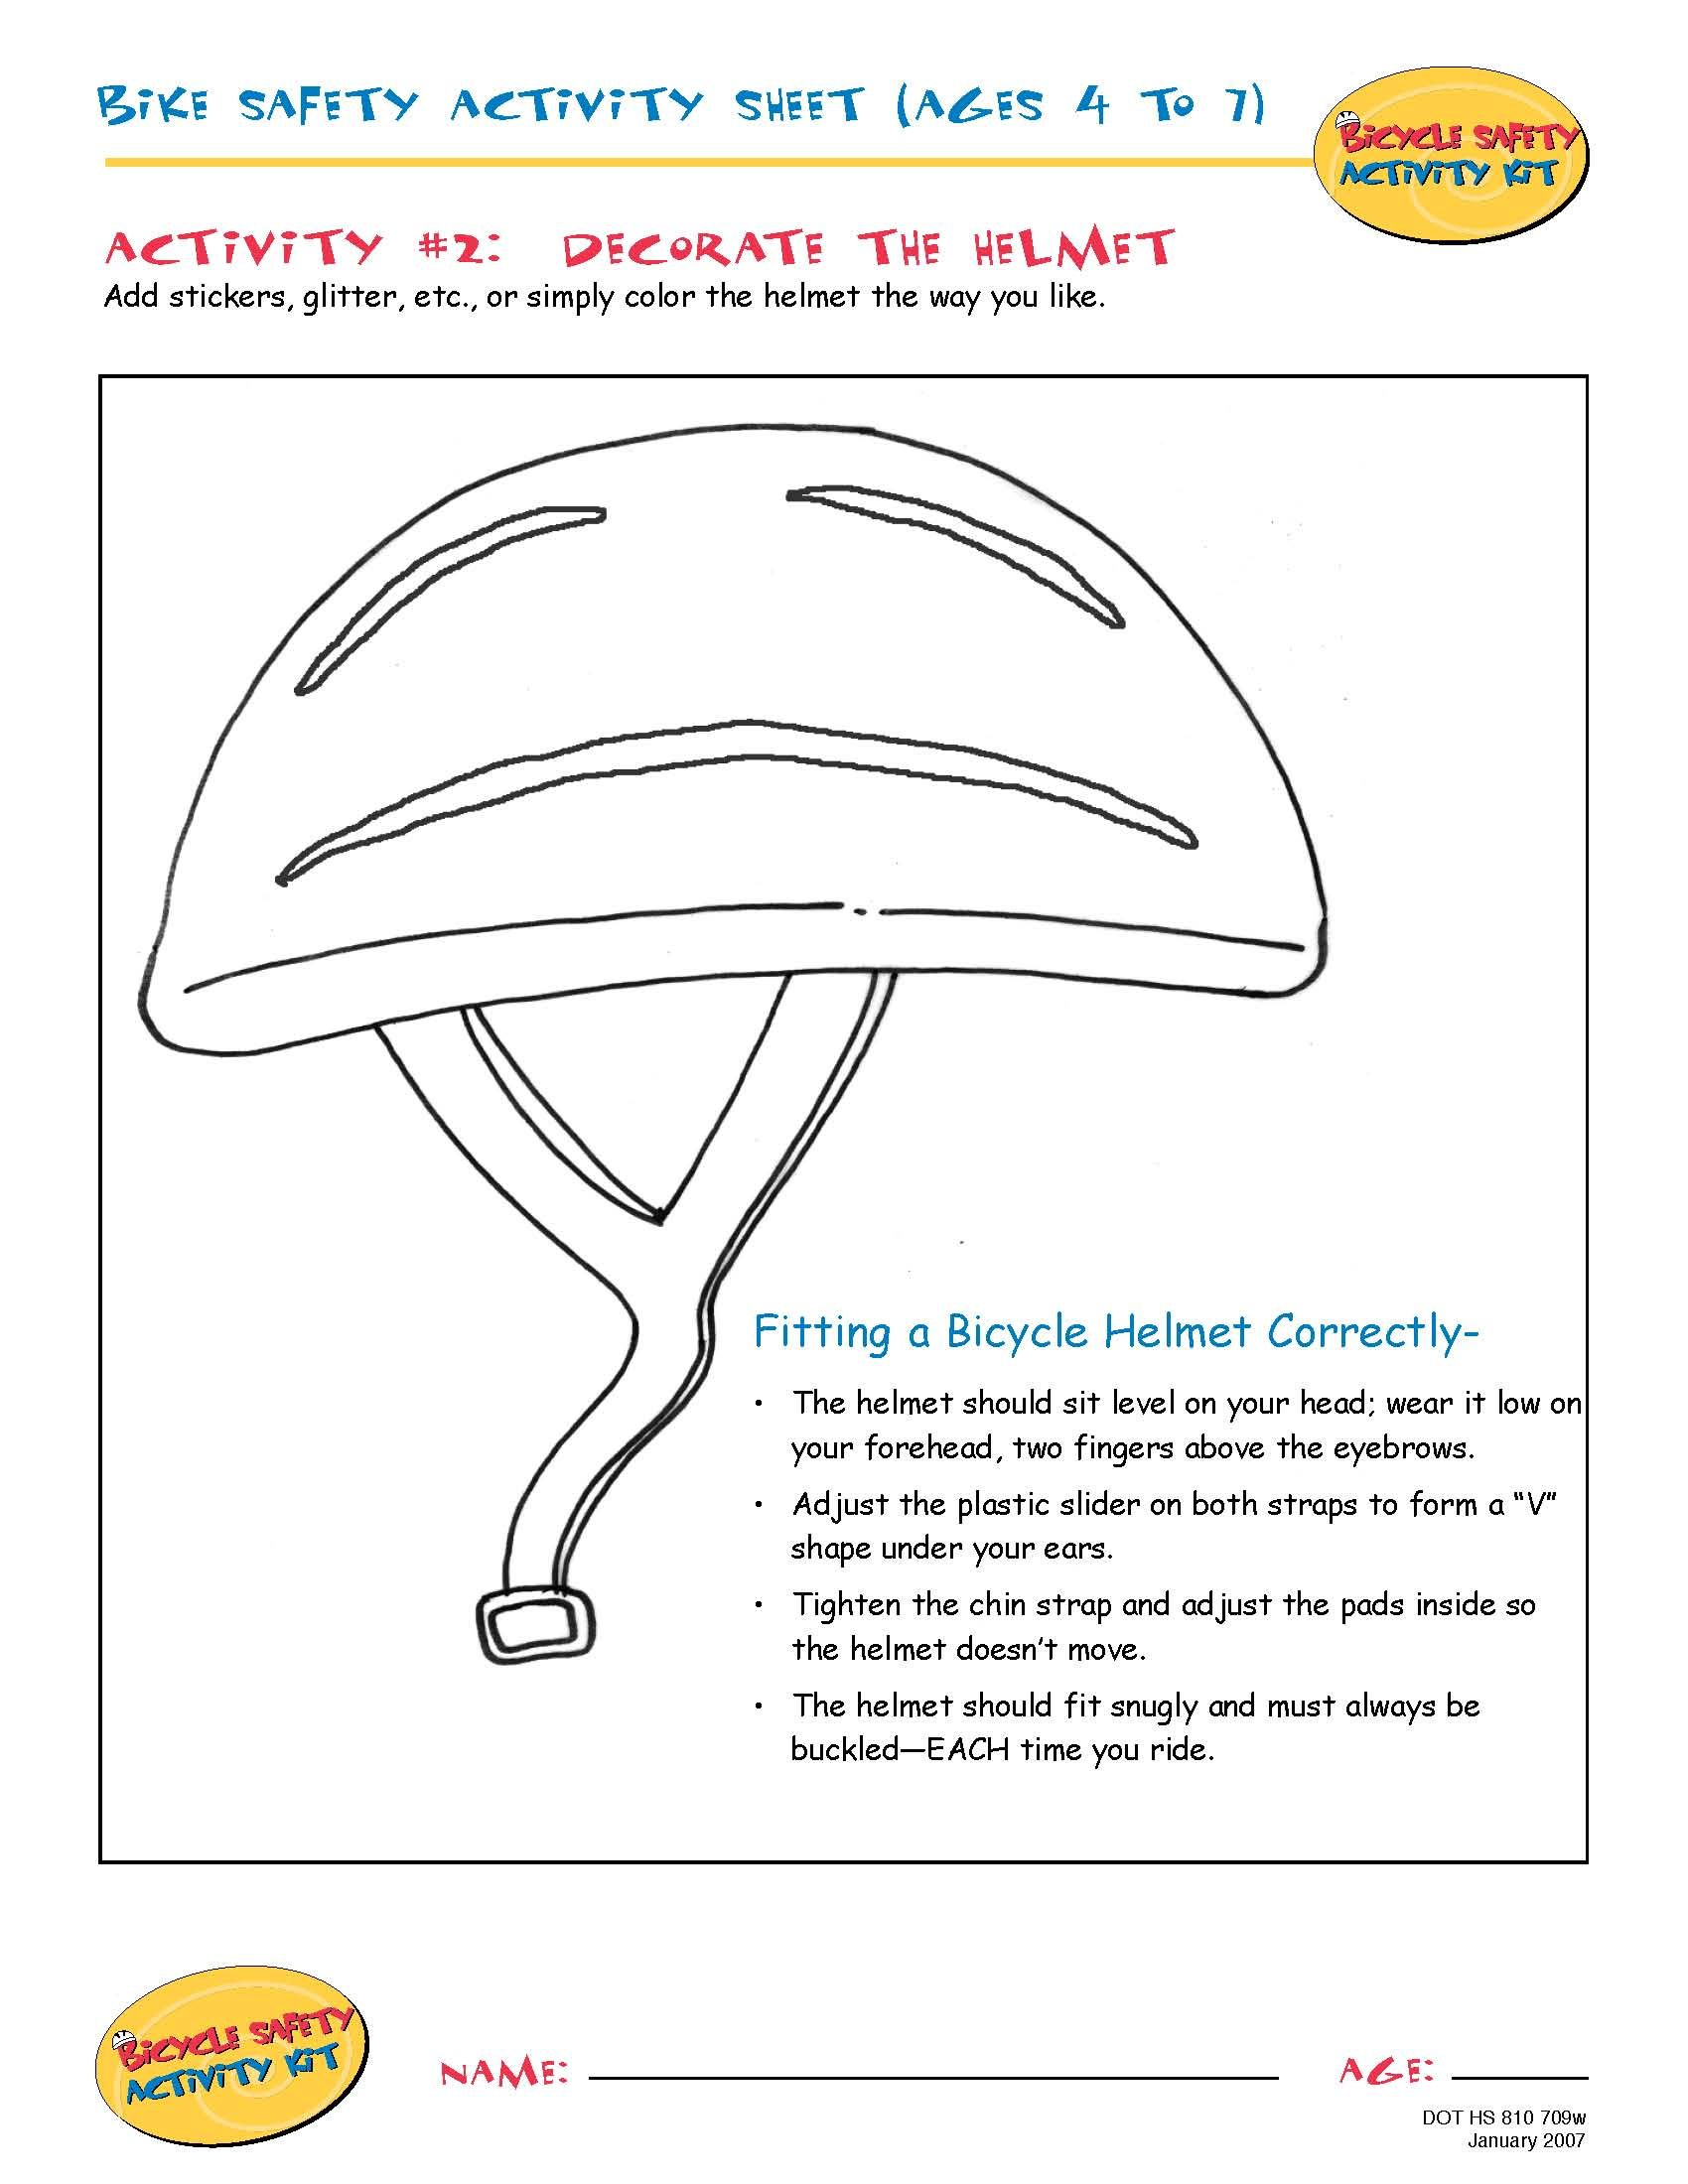 Bike Safety Activity Sheet (Ages 4 to 7): Decorate the Helmet ...